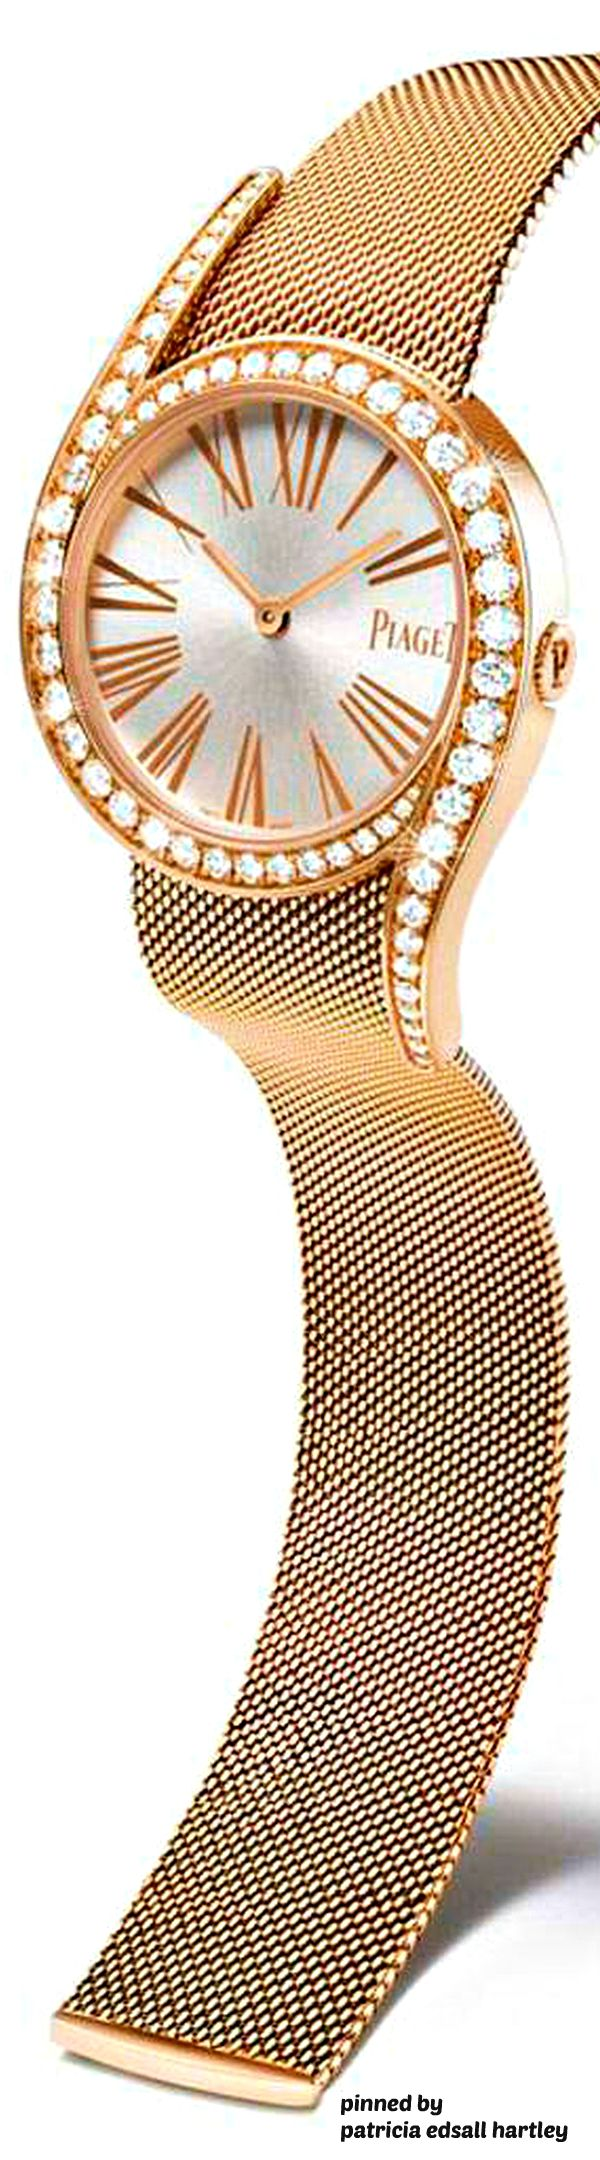 Piaget's Limelight Gala Milanese watch in pink gold with diamonds